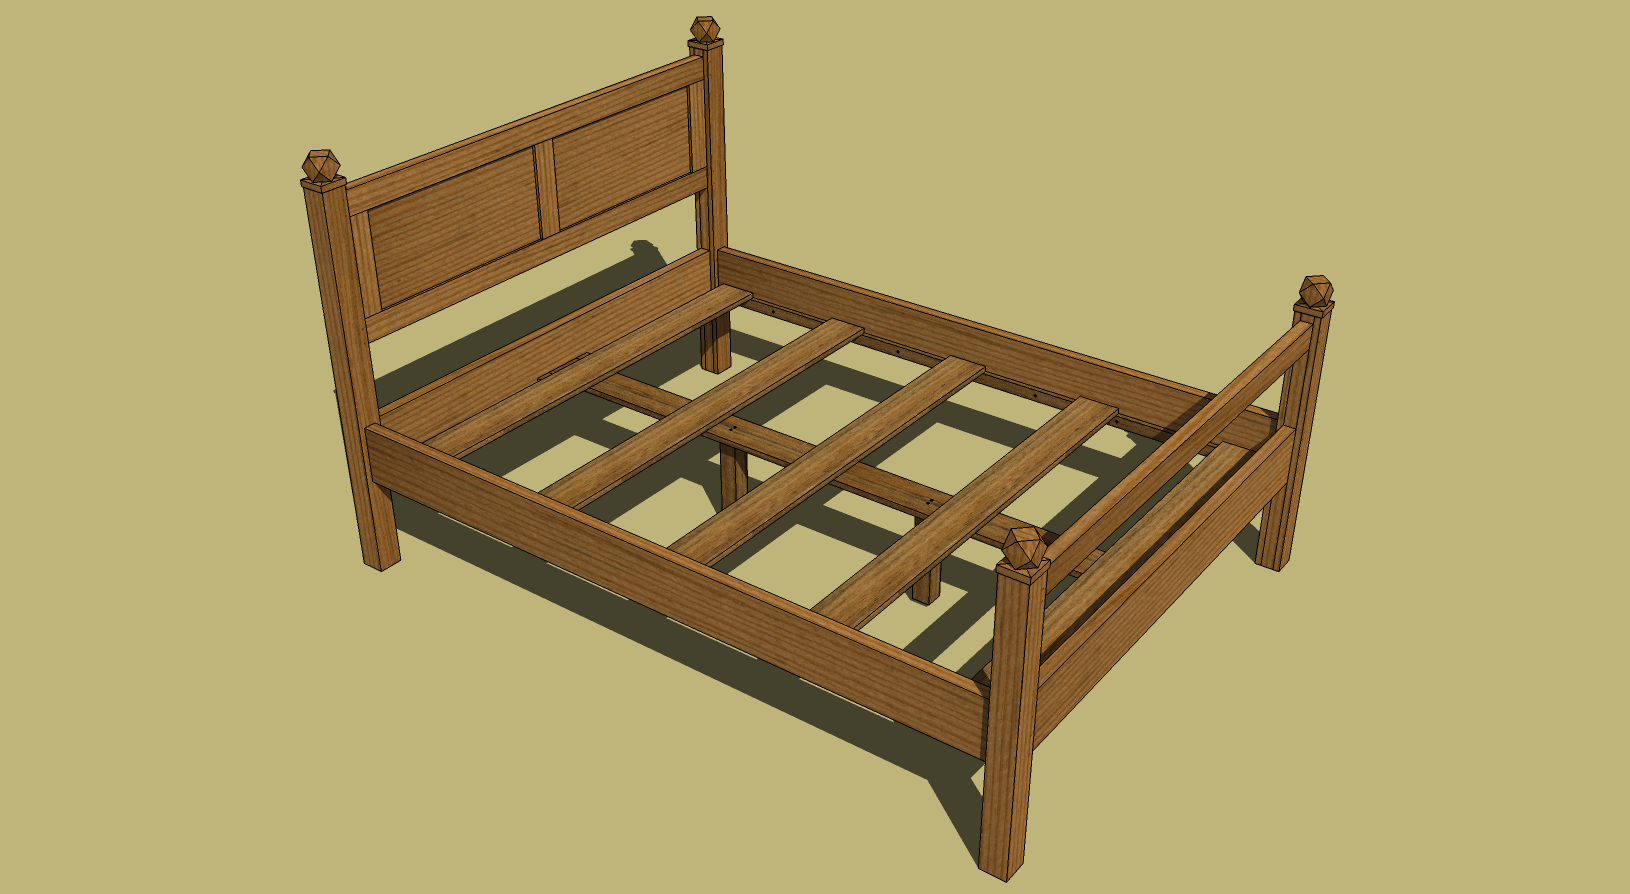 doll furniture bed woodworking plans